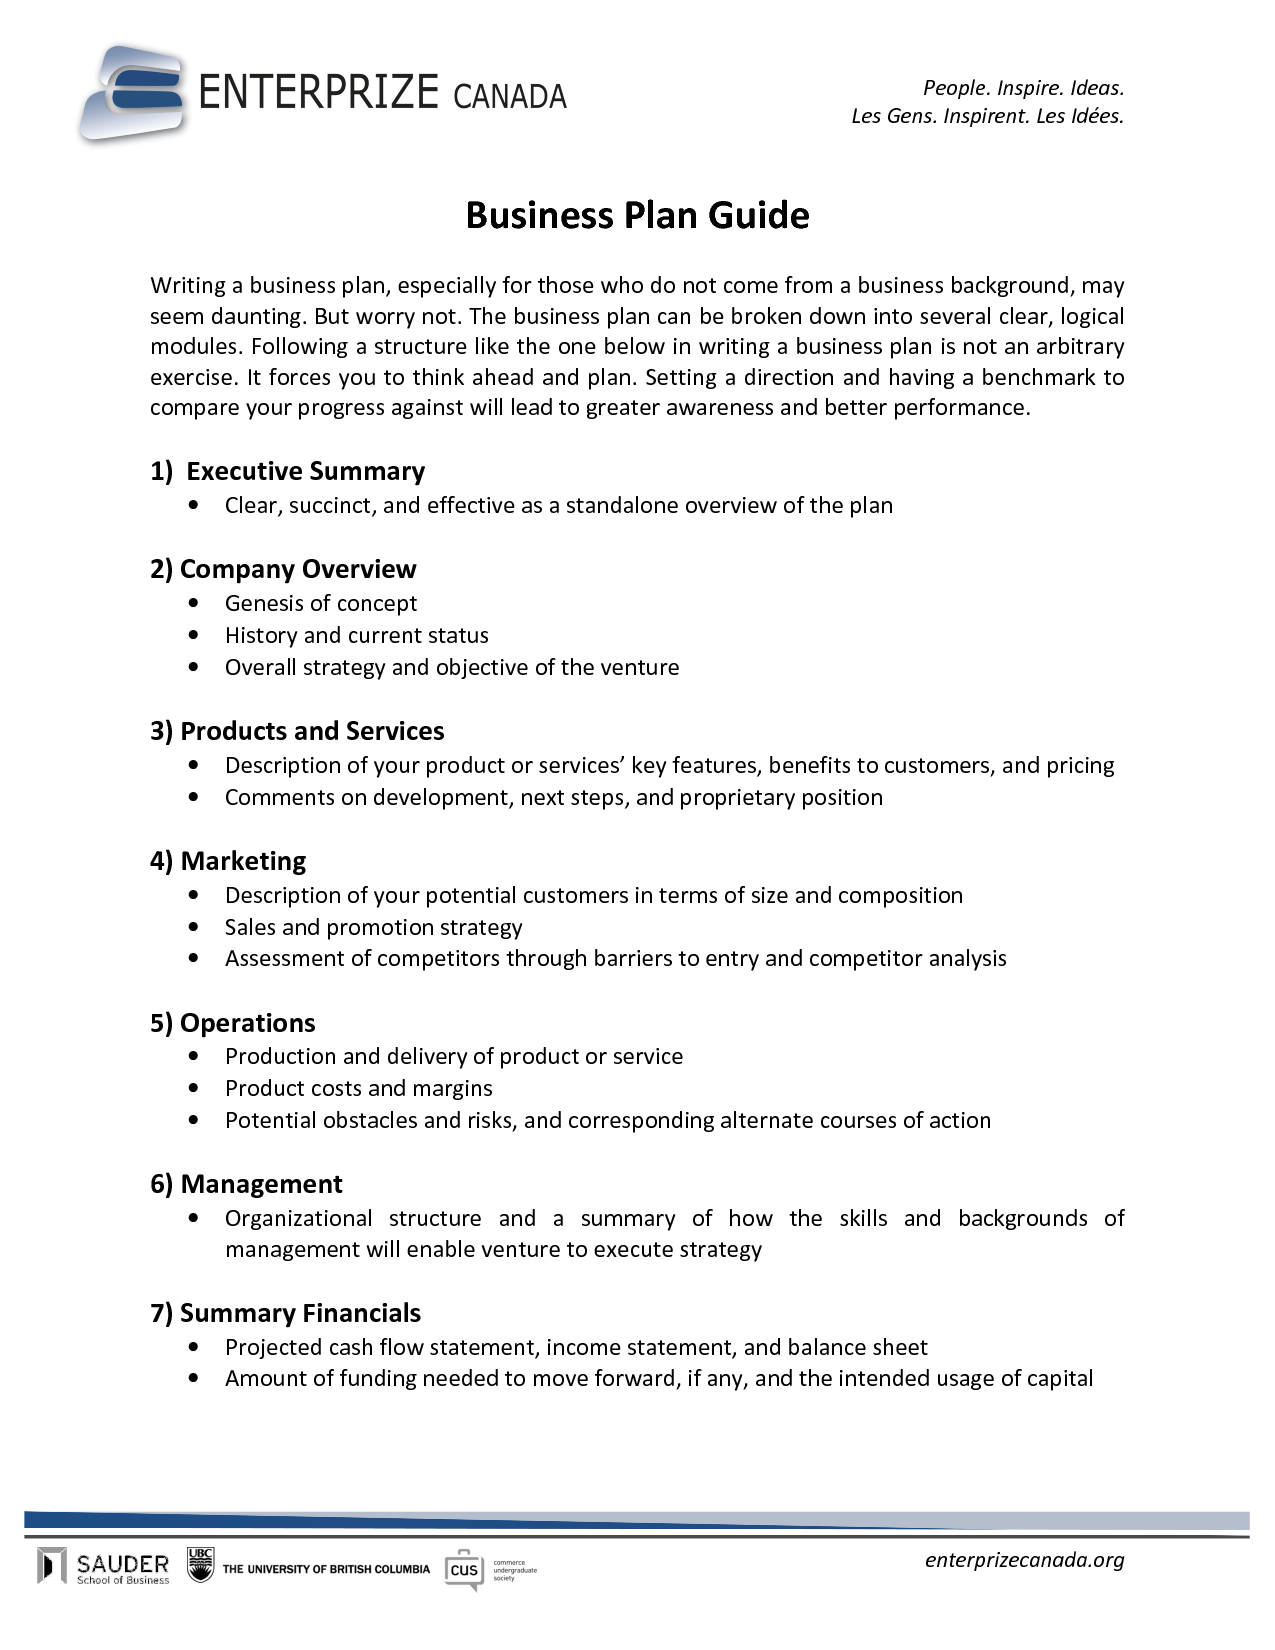 Sample business plan format idealstalist sample business plan format accmission Gallery